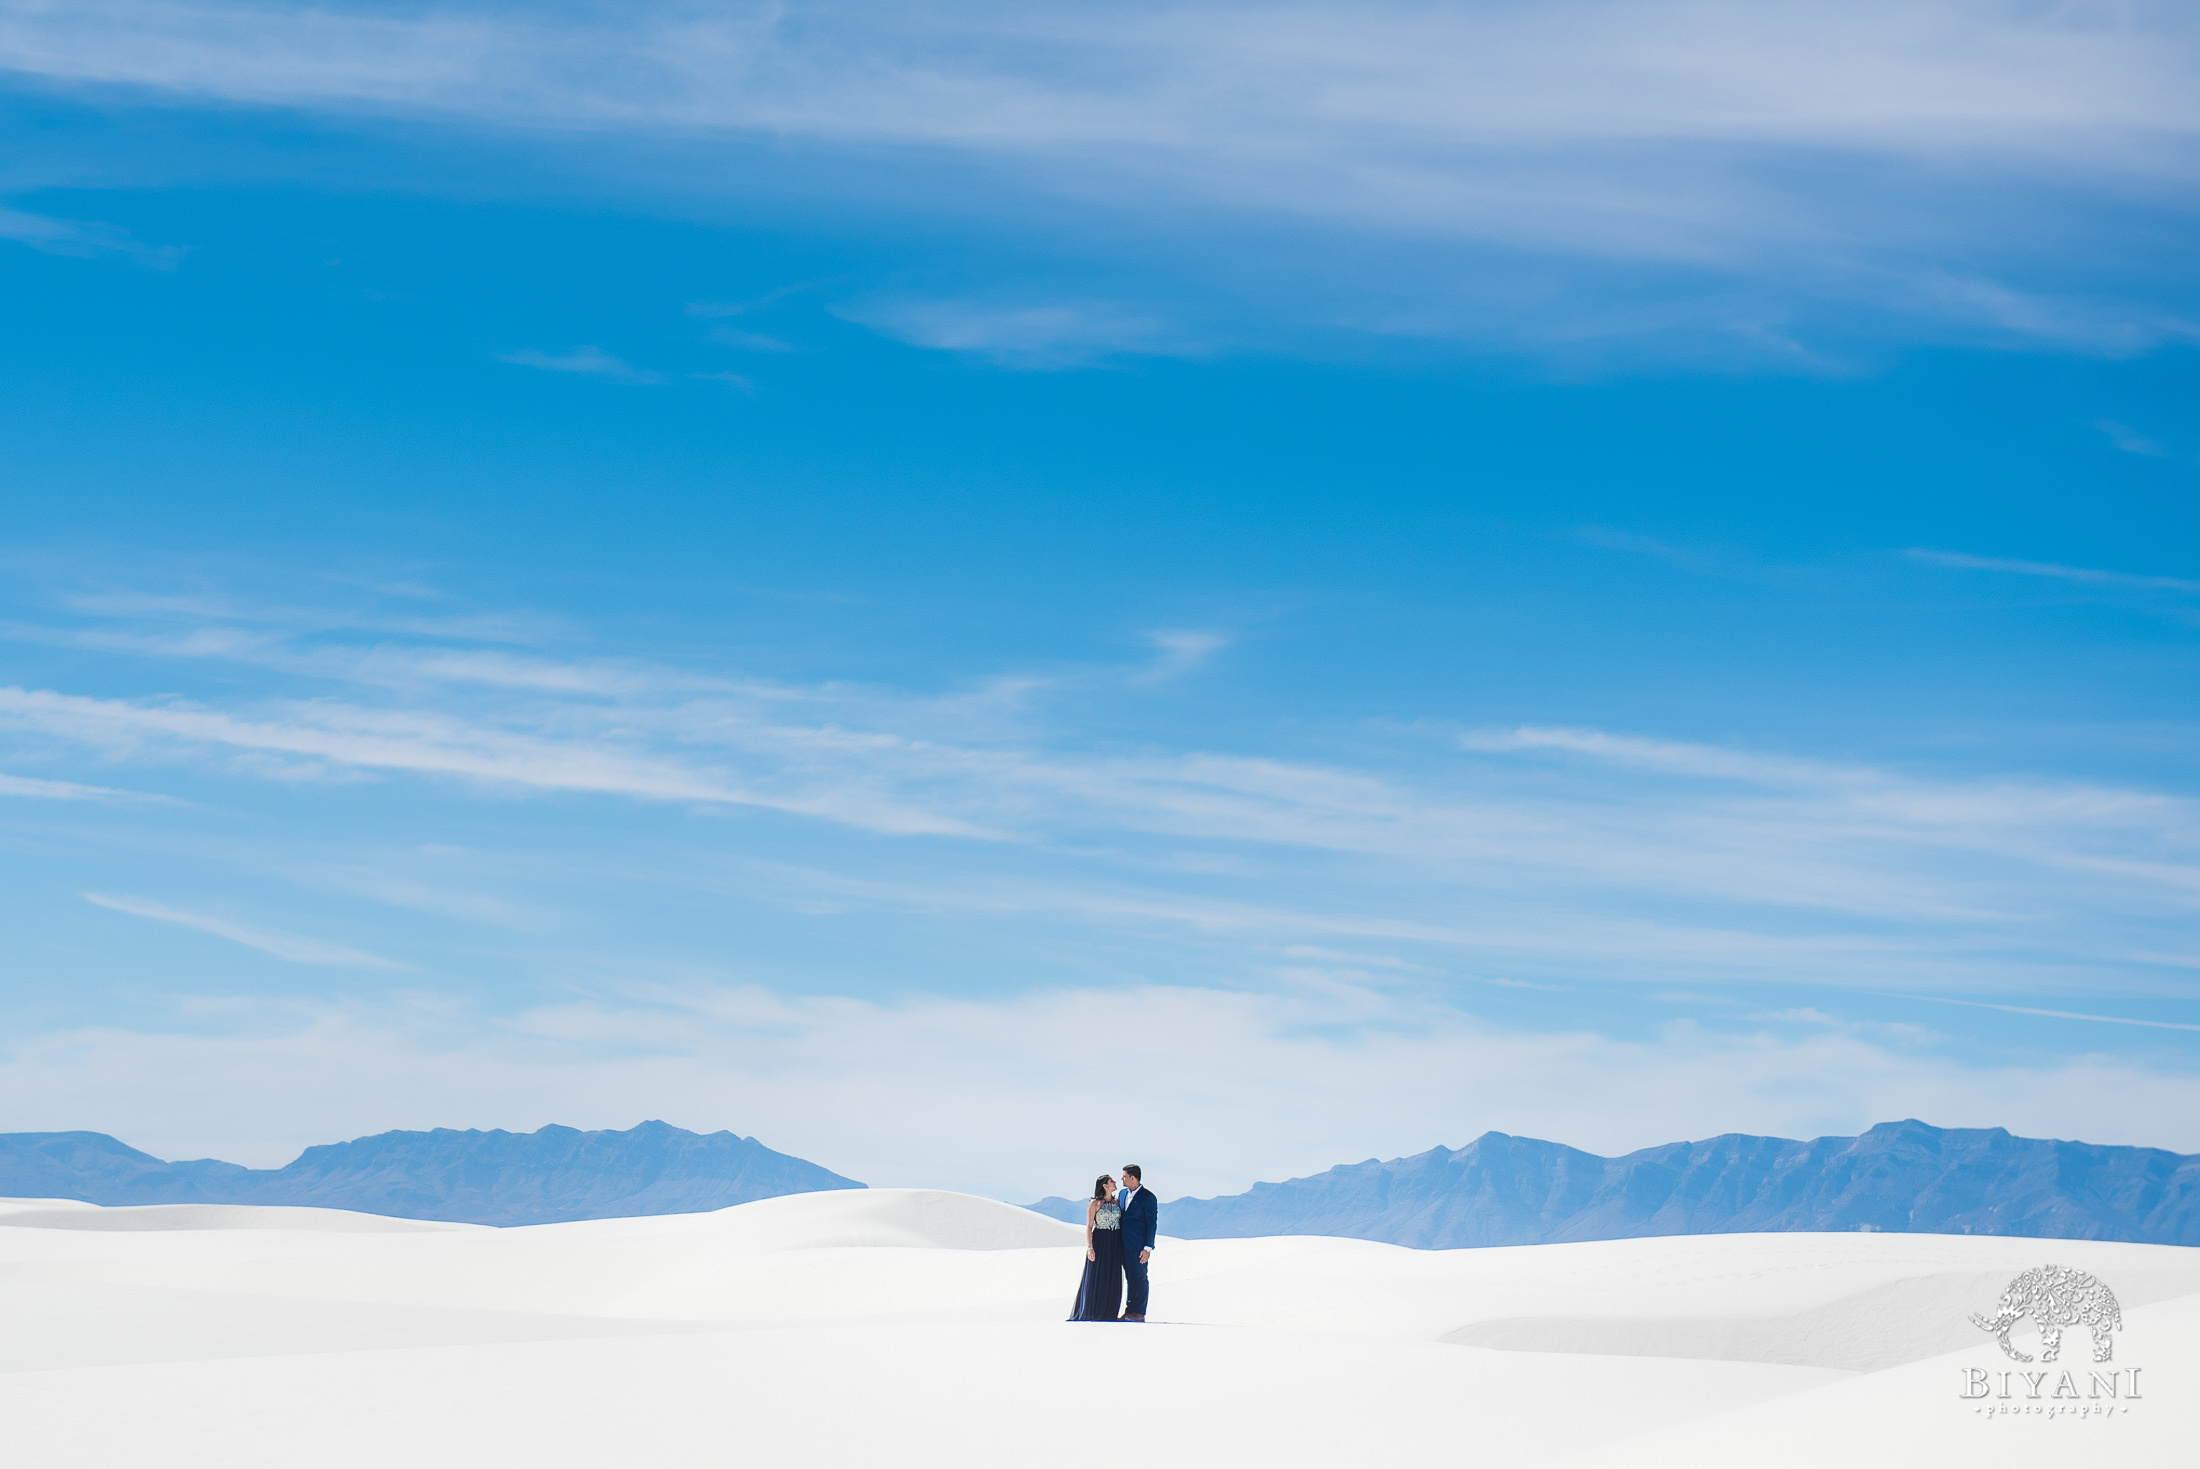 Couple together at the white sands national monument photographed from a distance